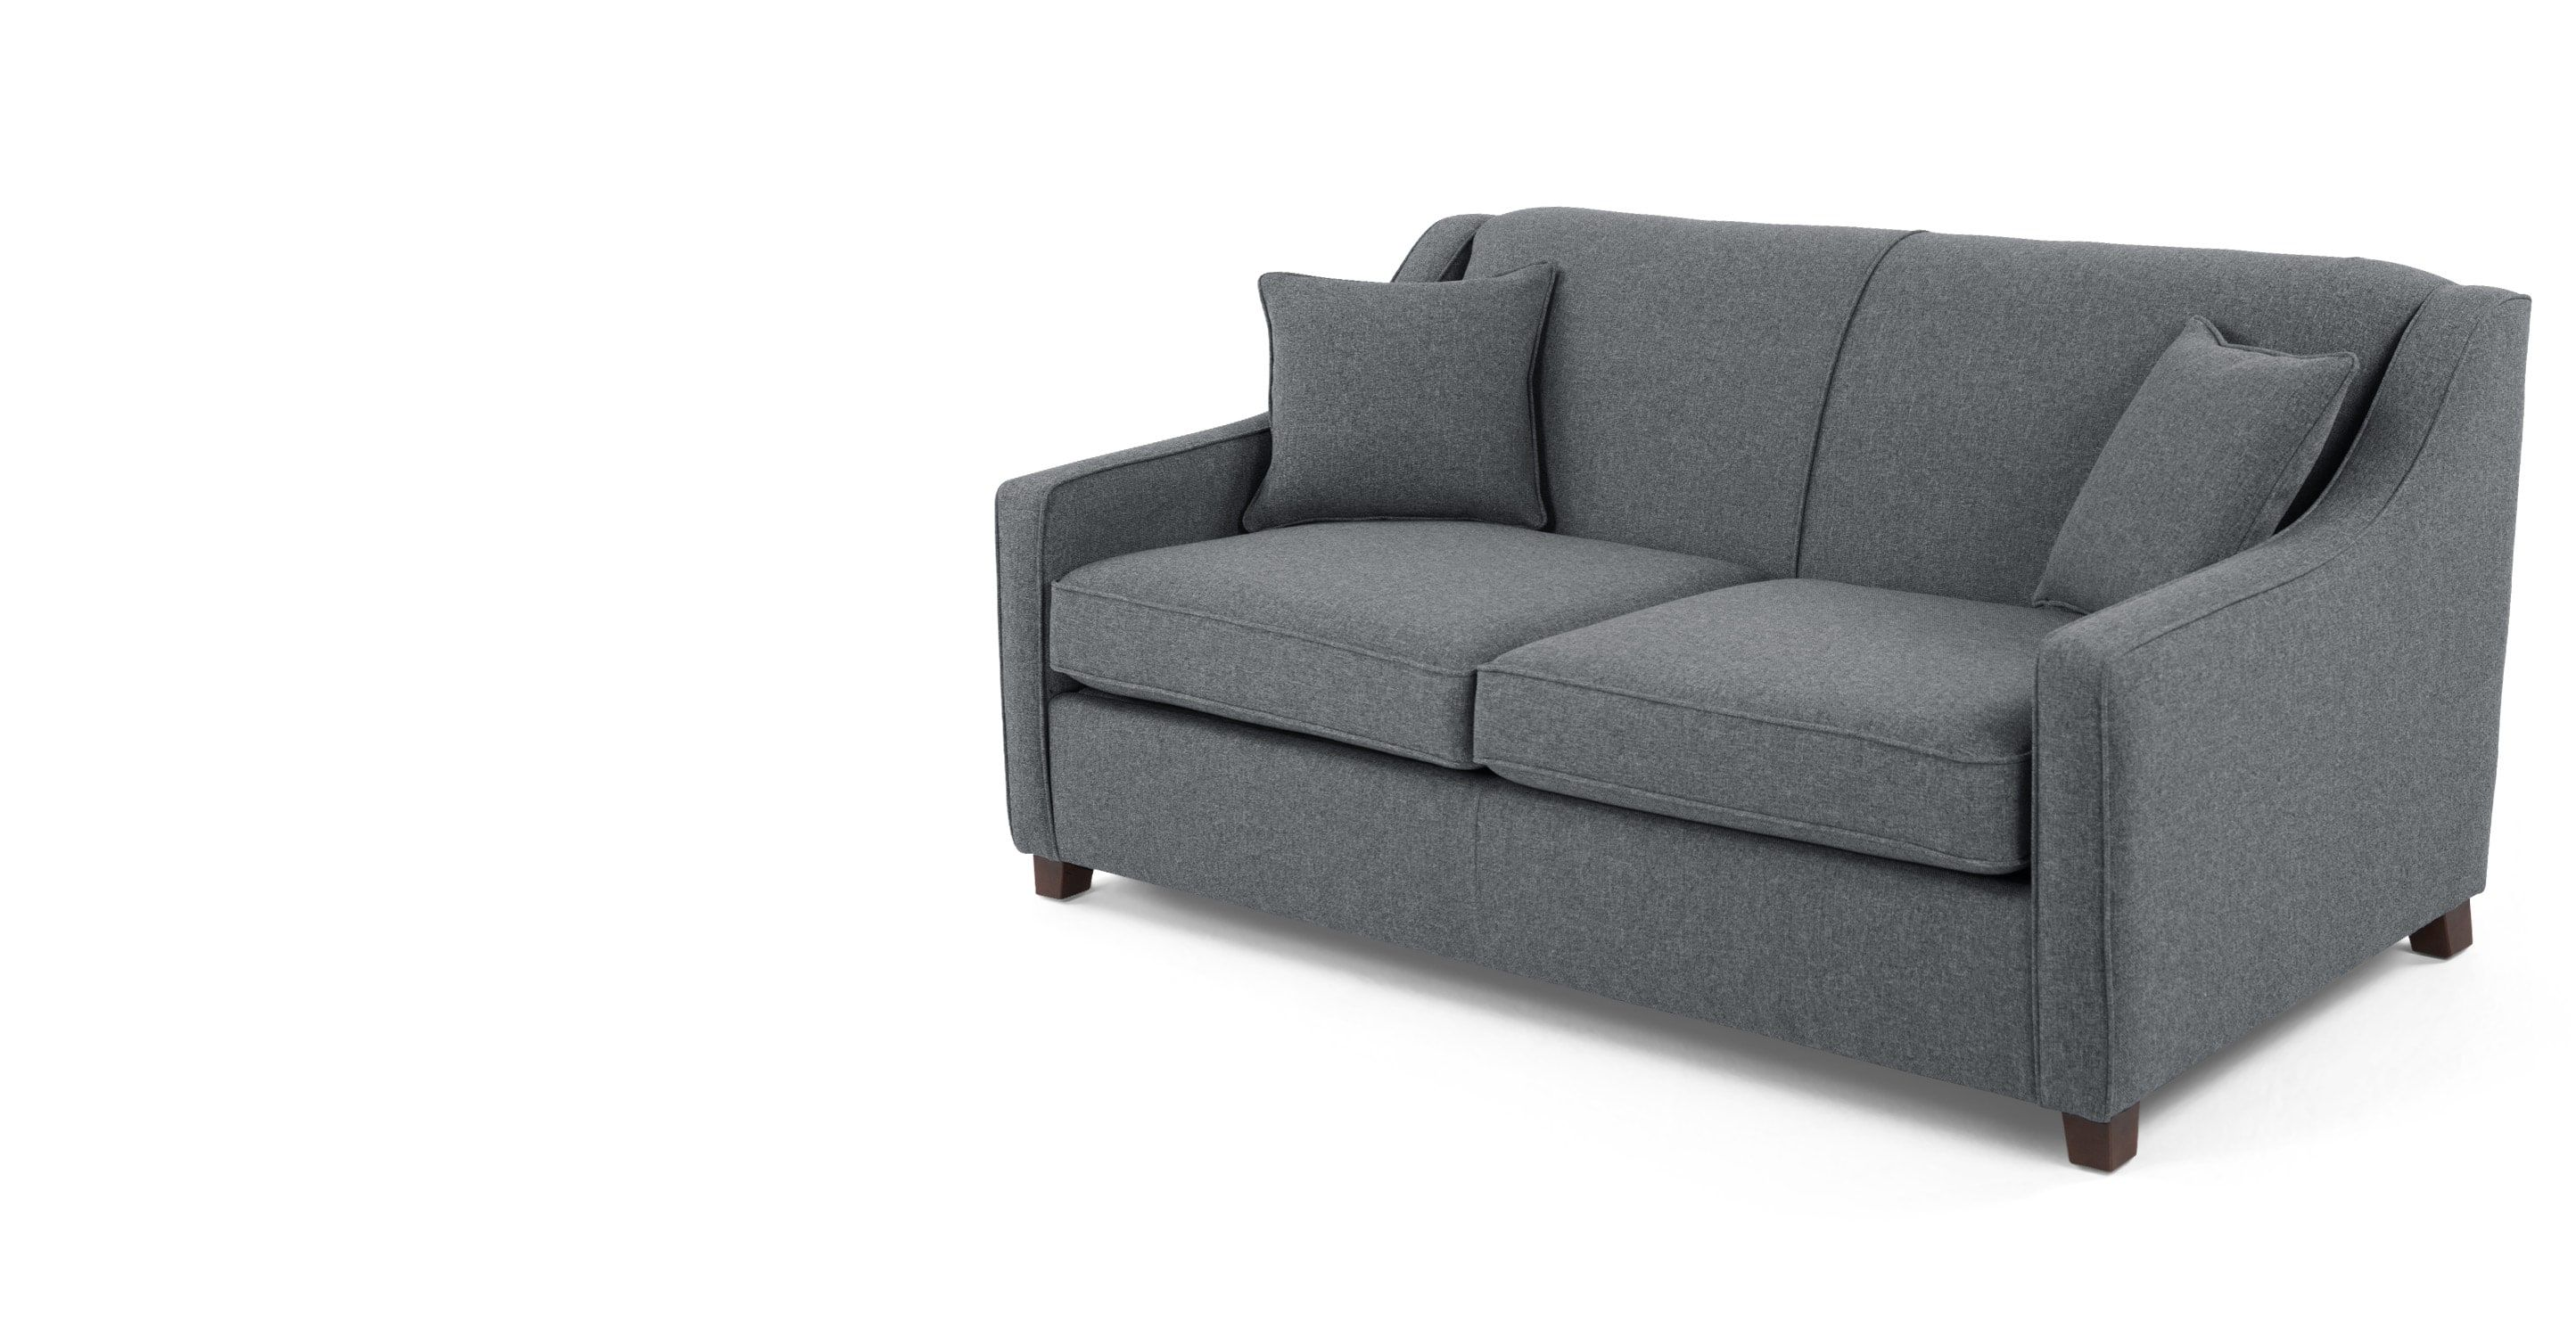 Boom chair sofa bed blue jeans fabric i like! pinterest chair